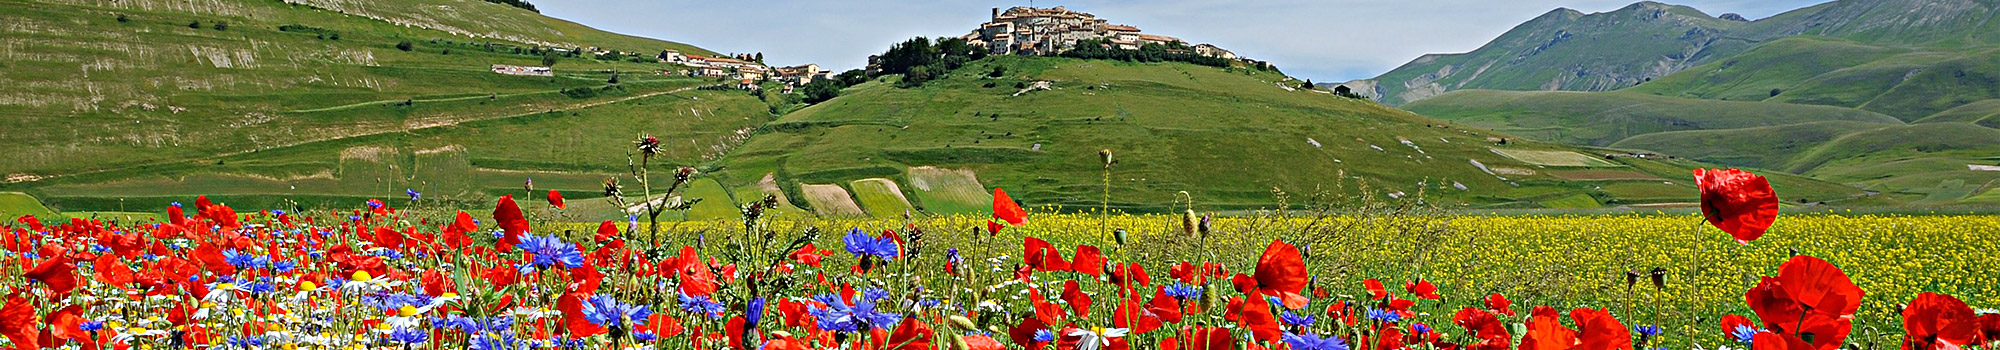 castelluccio umbria webcam live streaming